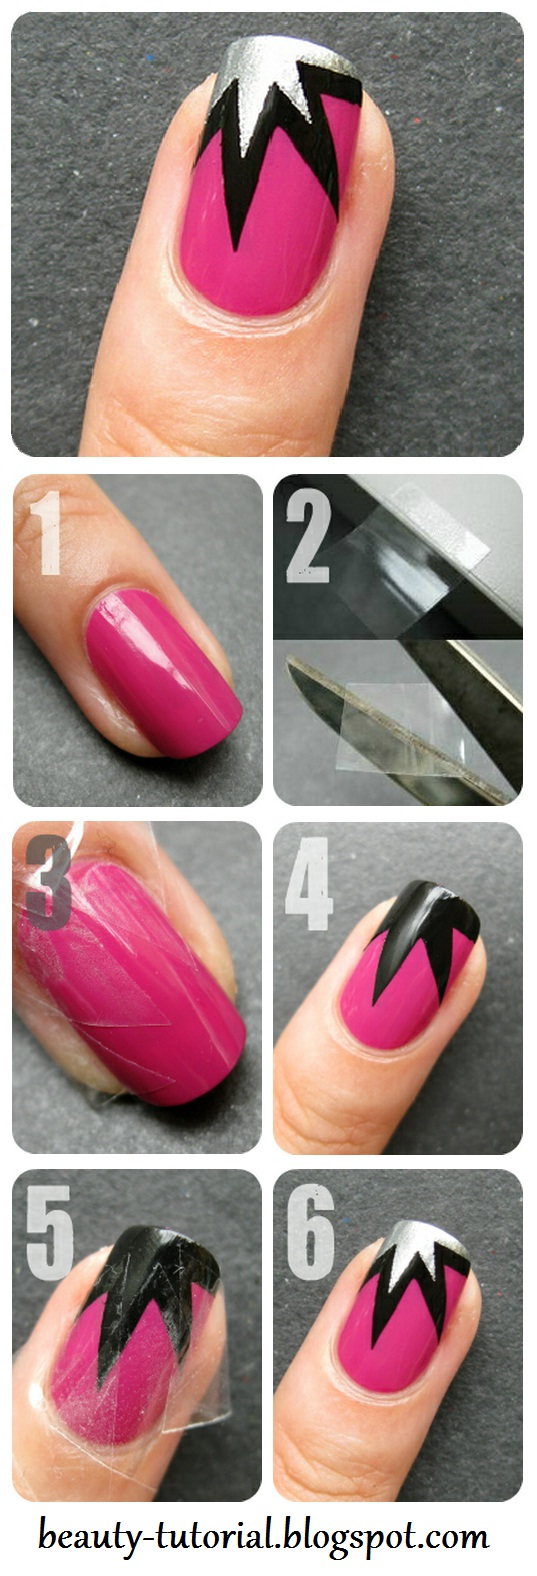 Cool Nail Designs Tutorials